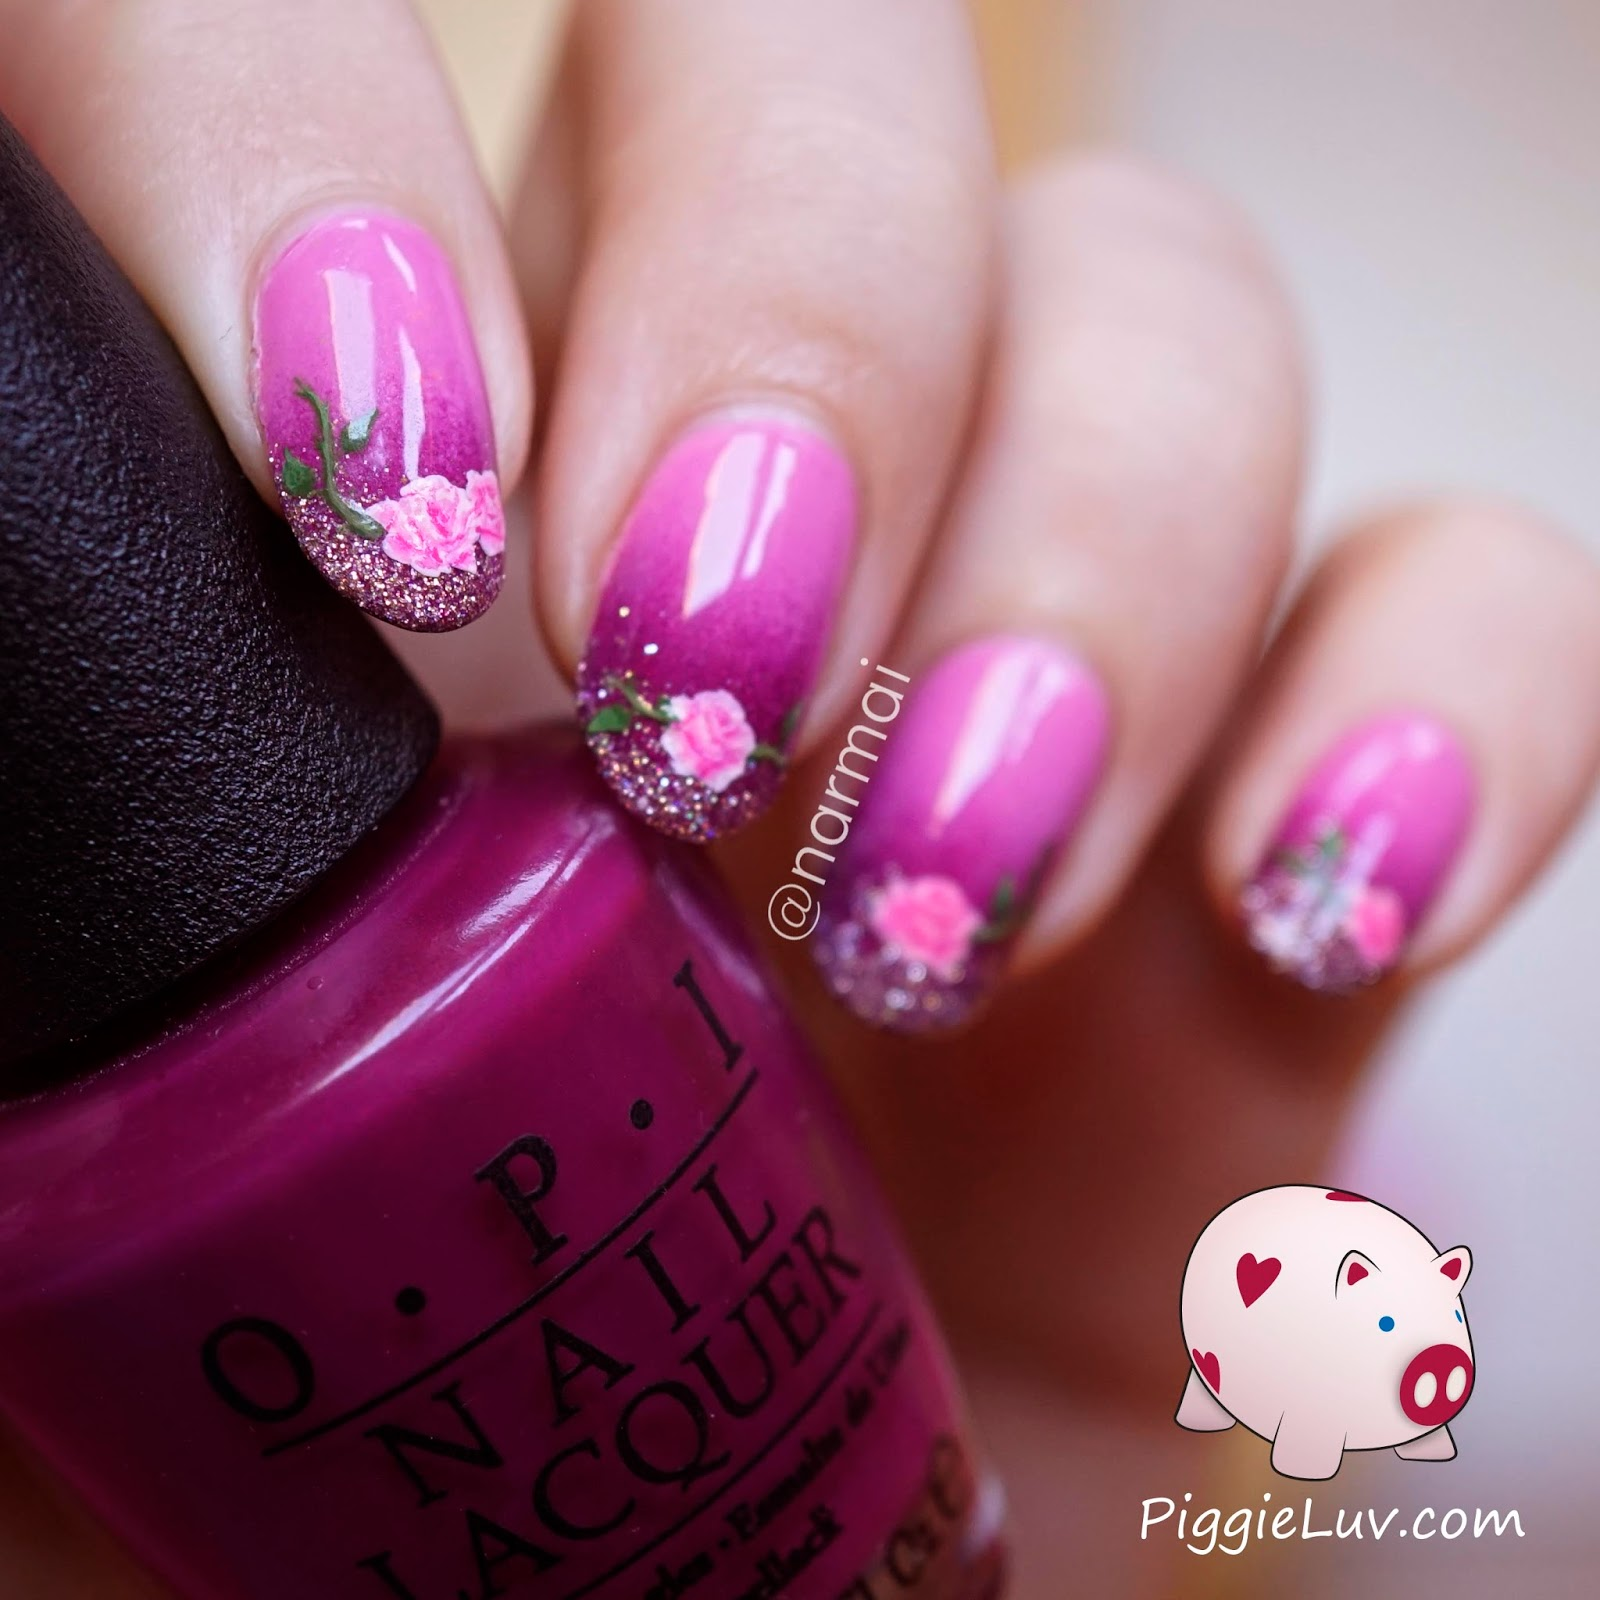 Nail Art Valentines: PiggieLuv: Freehand Roses Nail Art For Valentine's Day